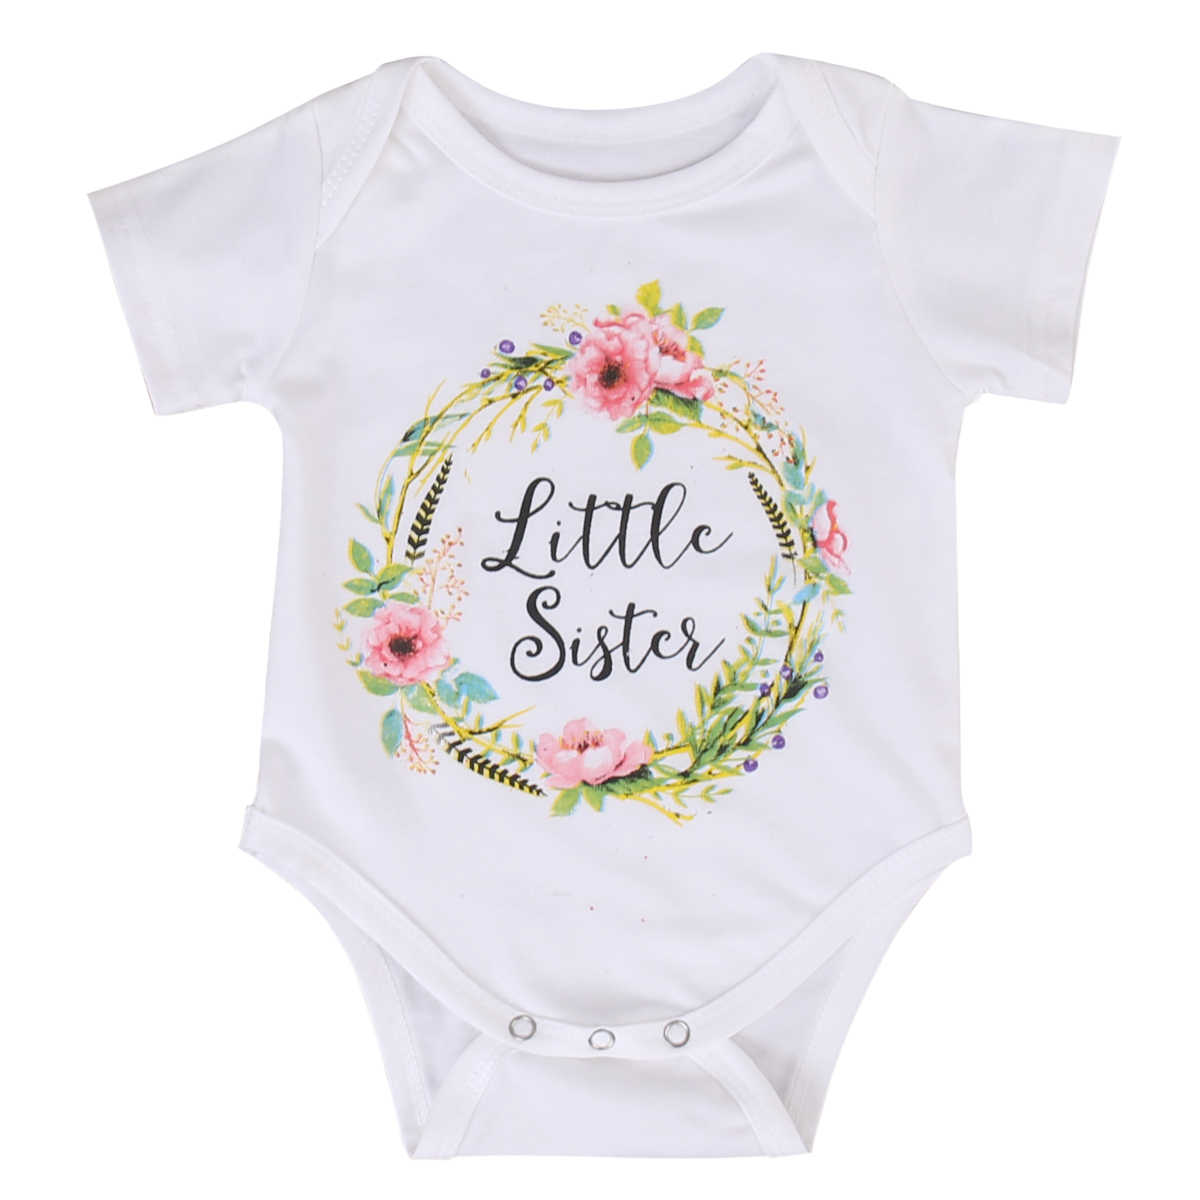 Baby Girl Clothes Summer Baby Kids Girl Little Big Sister Match Clothes Jumpsuit Romper Outfits T Shirt Family Matching Outfits